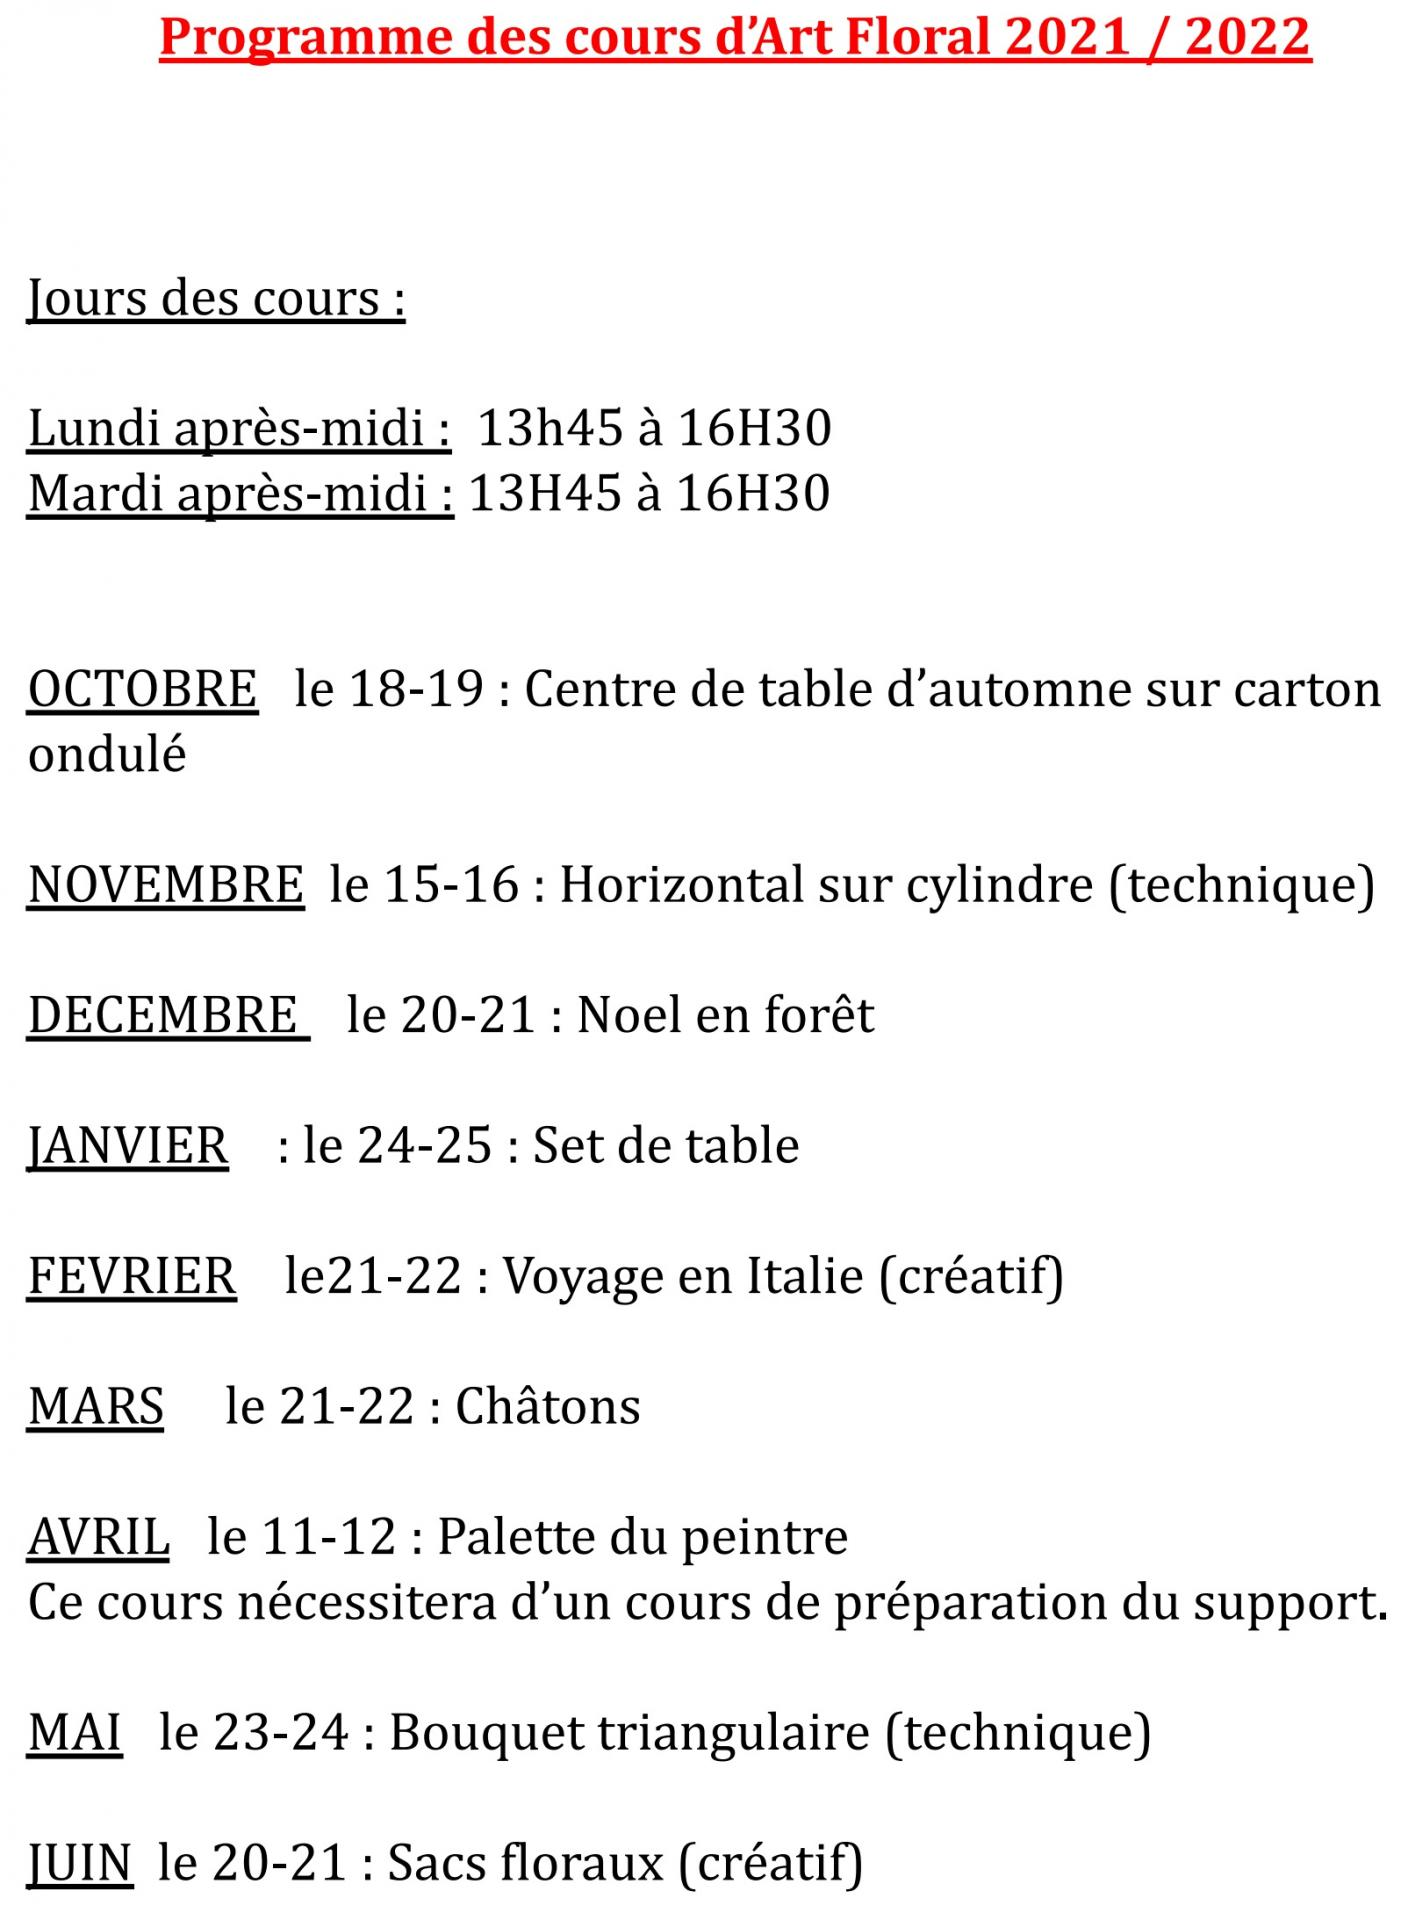 Programme cours 2021 2022